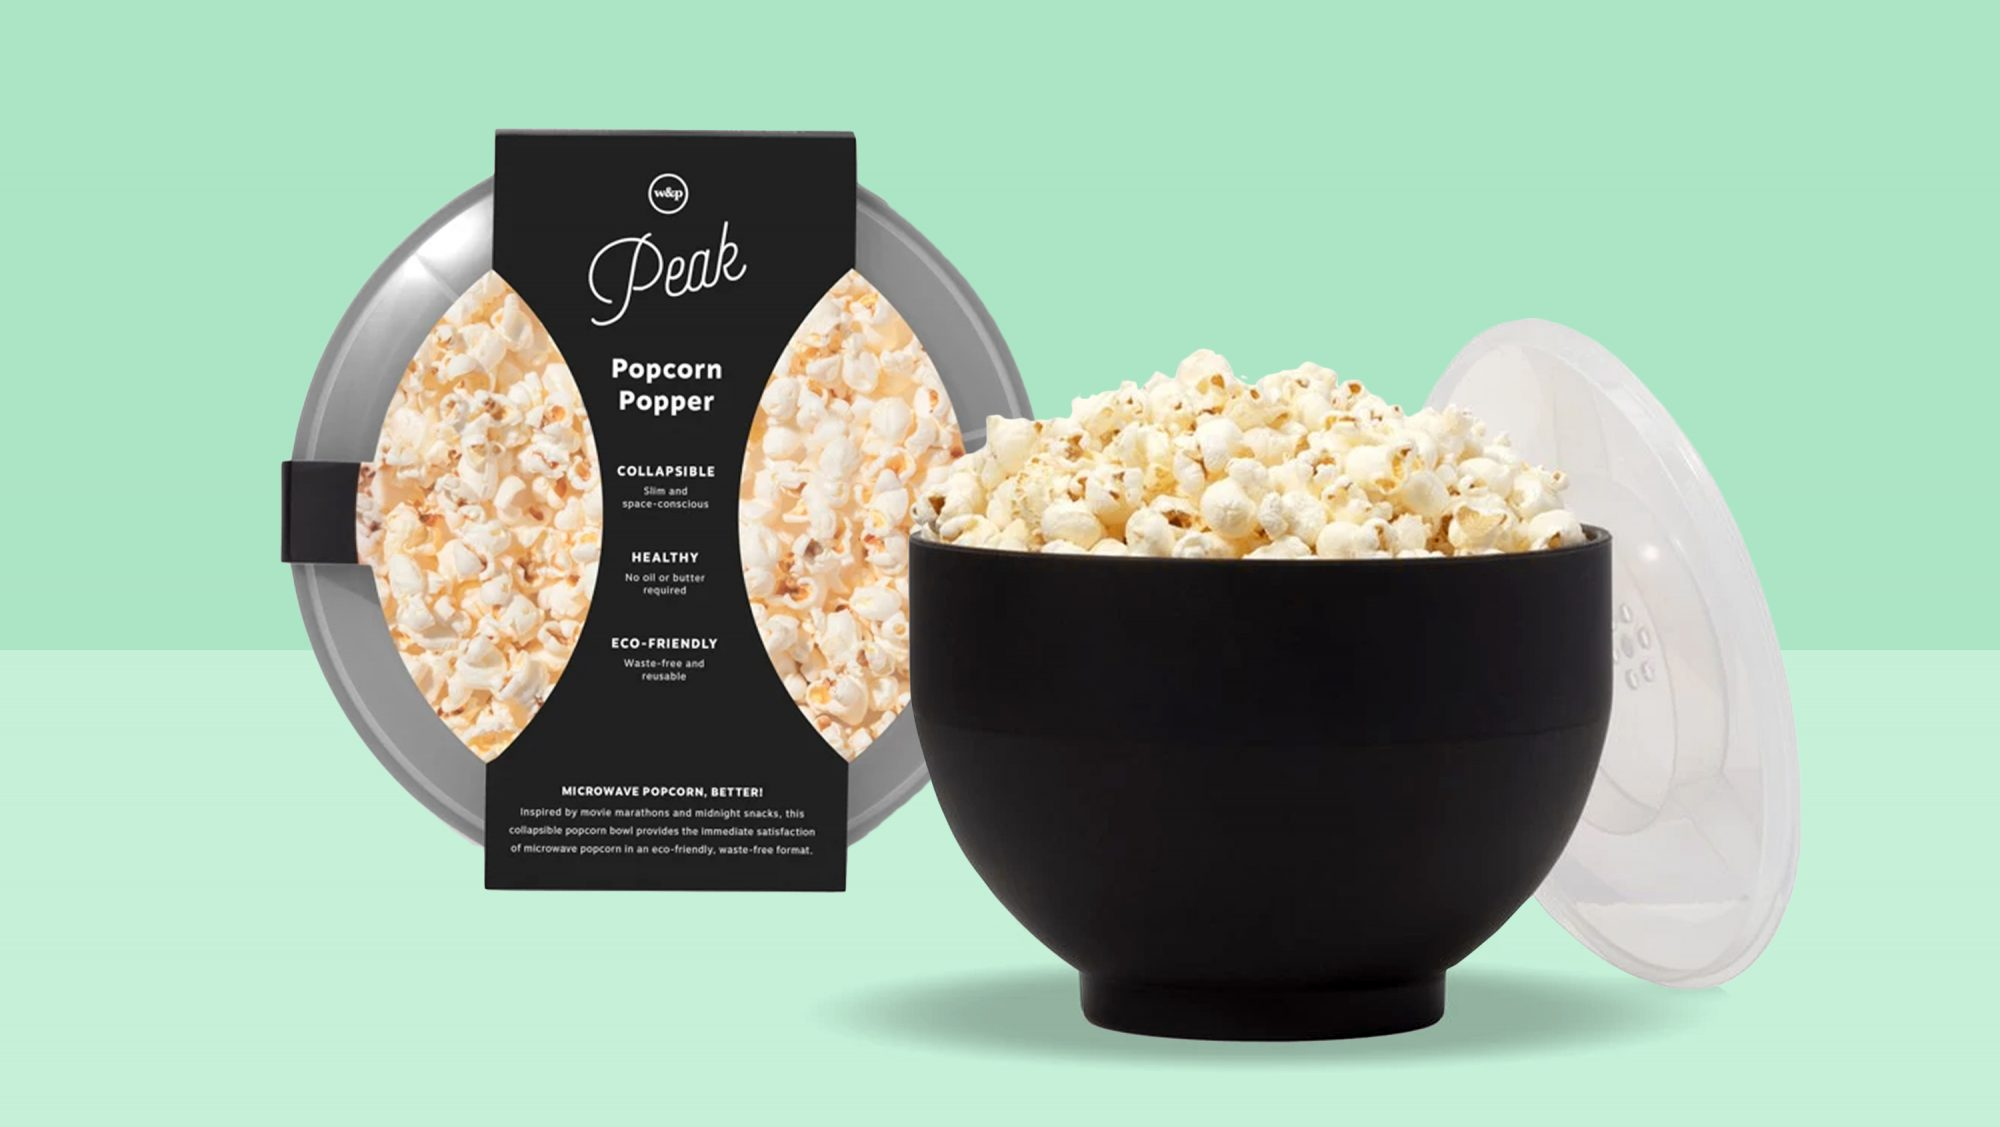 Cheap Christmas Gifts for 2020: Main Image popcorn bowl with green background